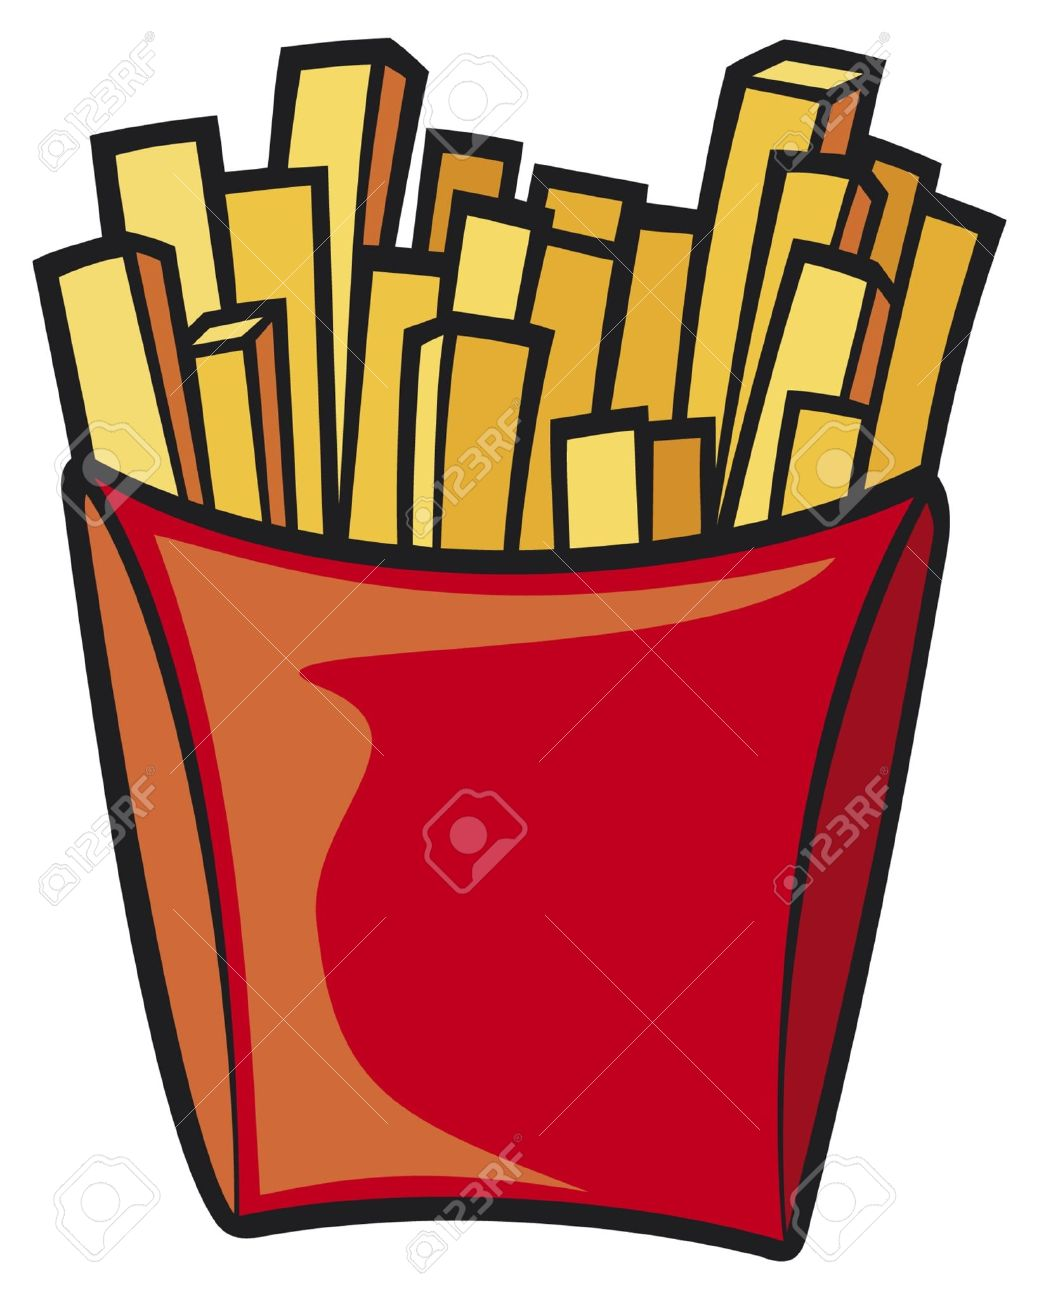 Collection of Chips clipart.